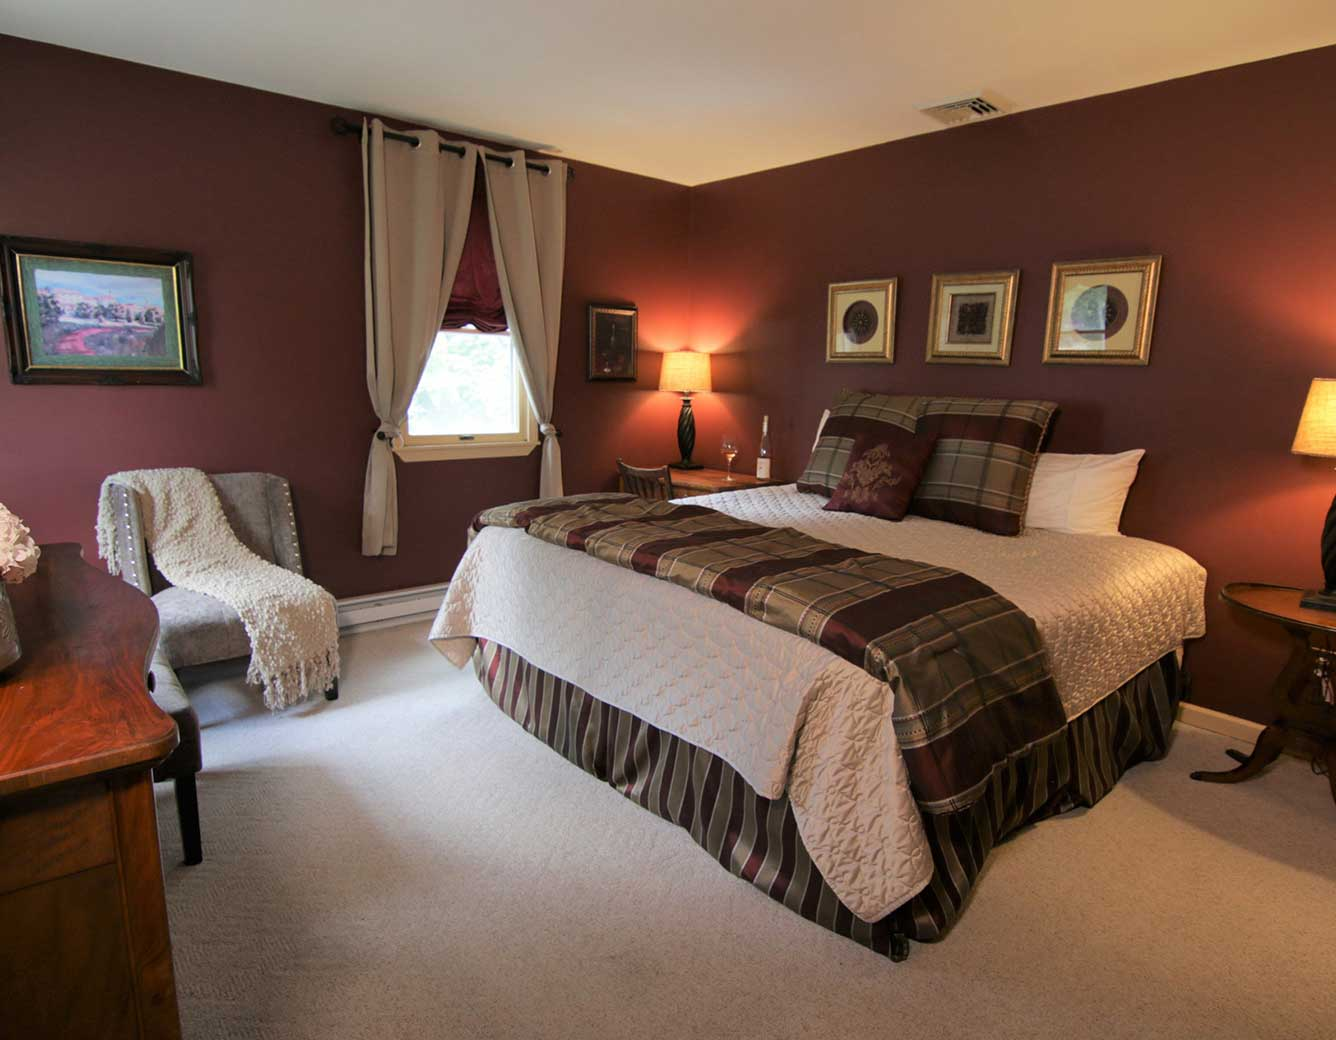 Vintner's Bed Room, Magnolia Place Bed & Breakfast, Finger Lakes, NY